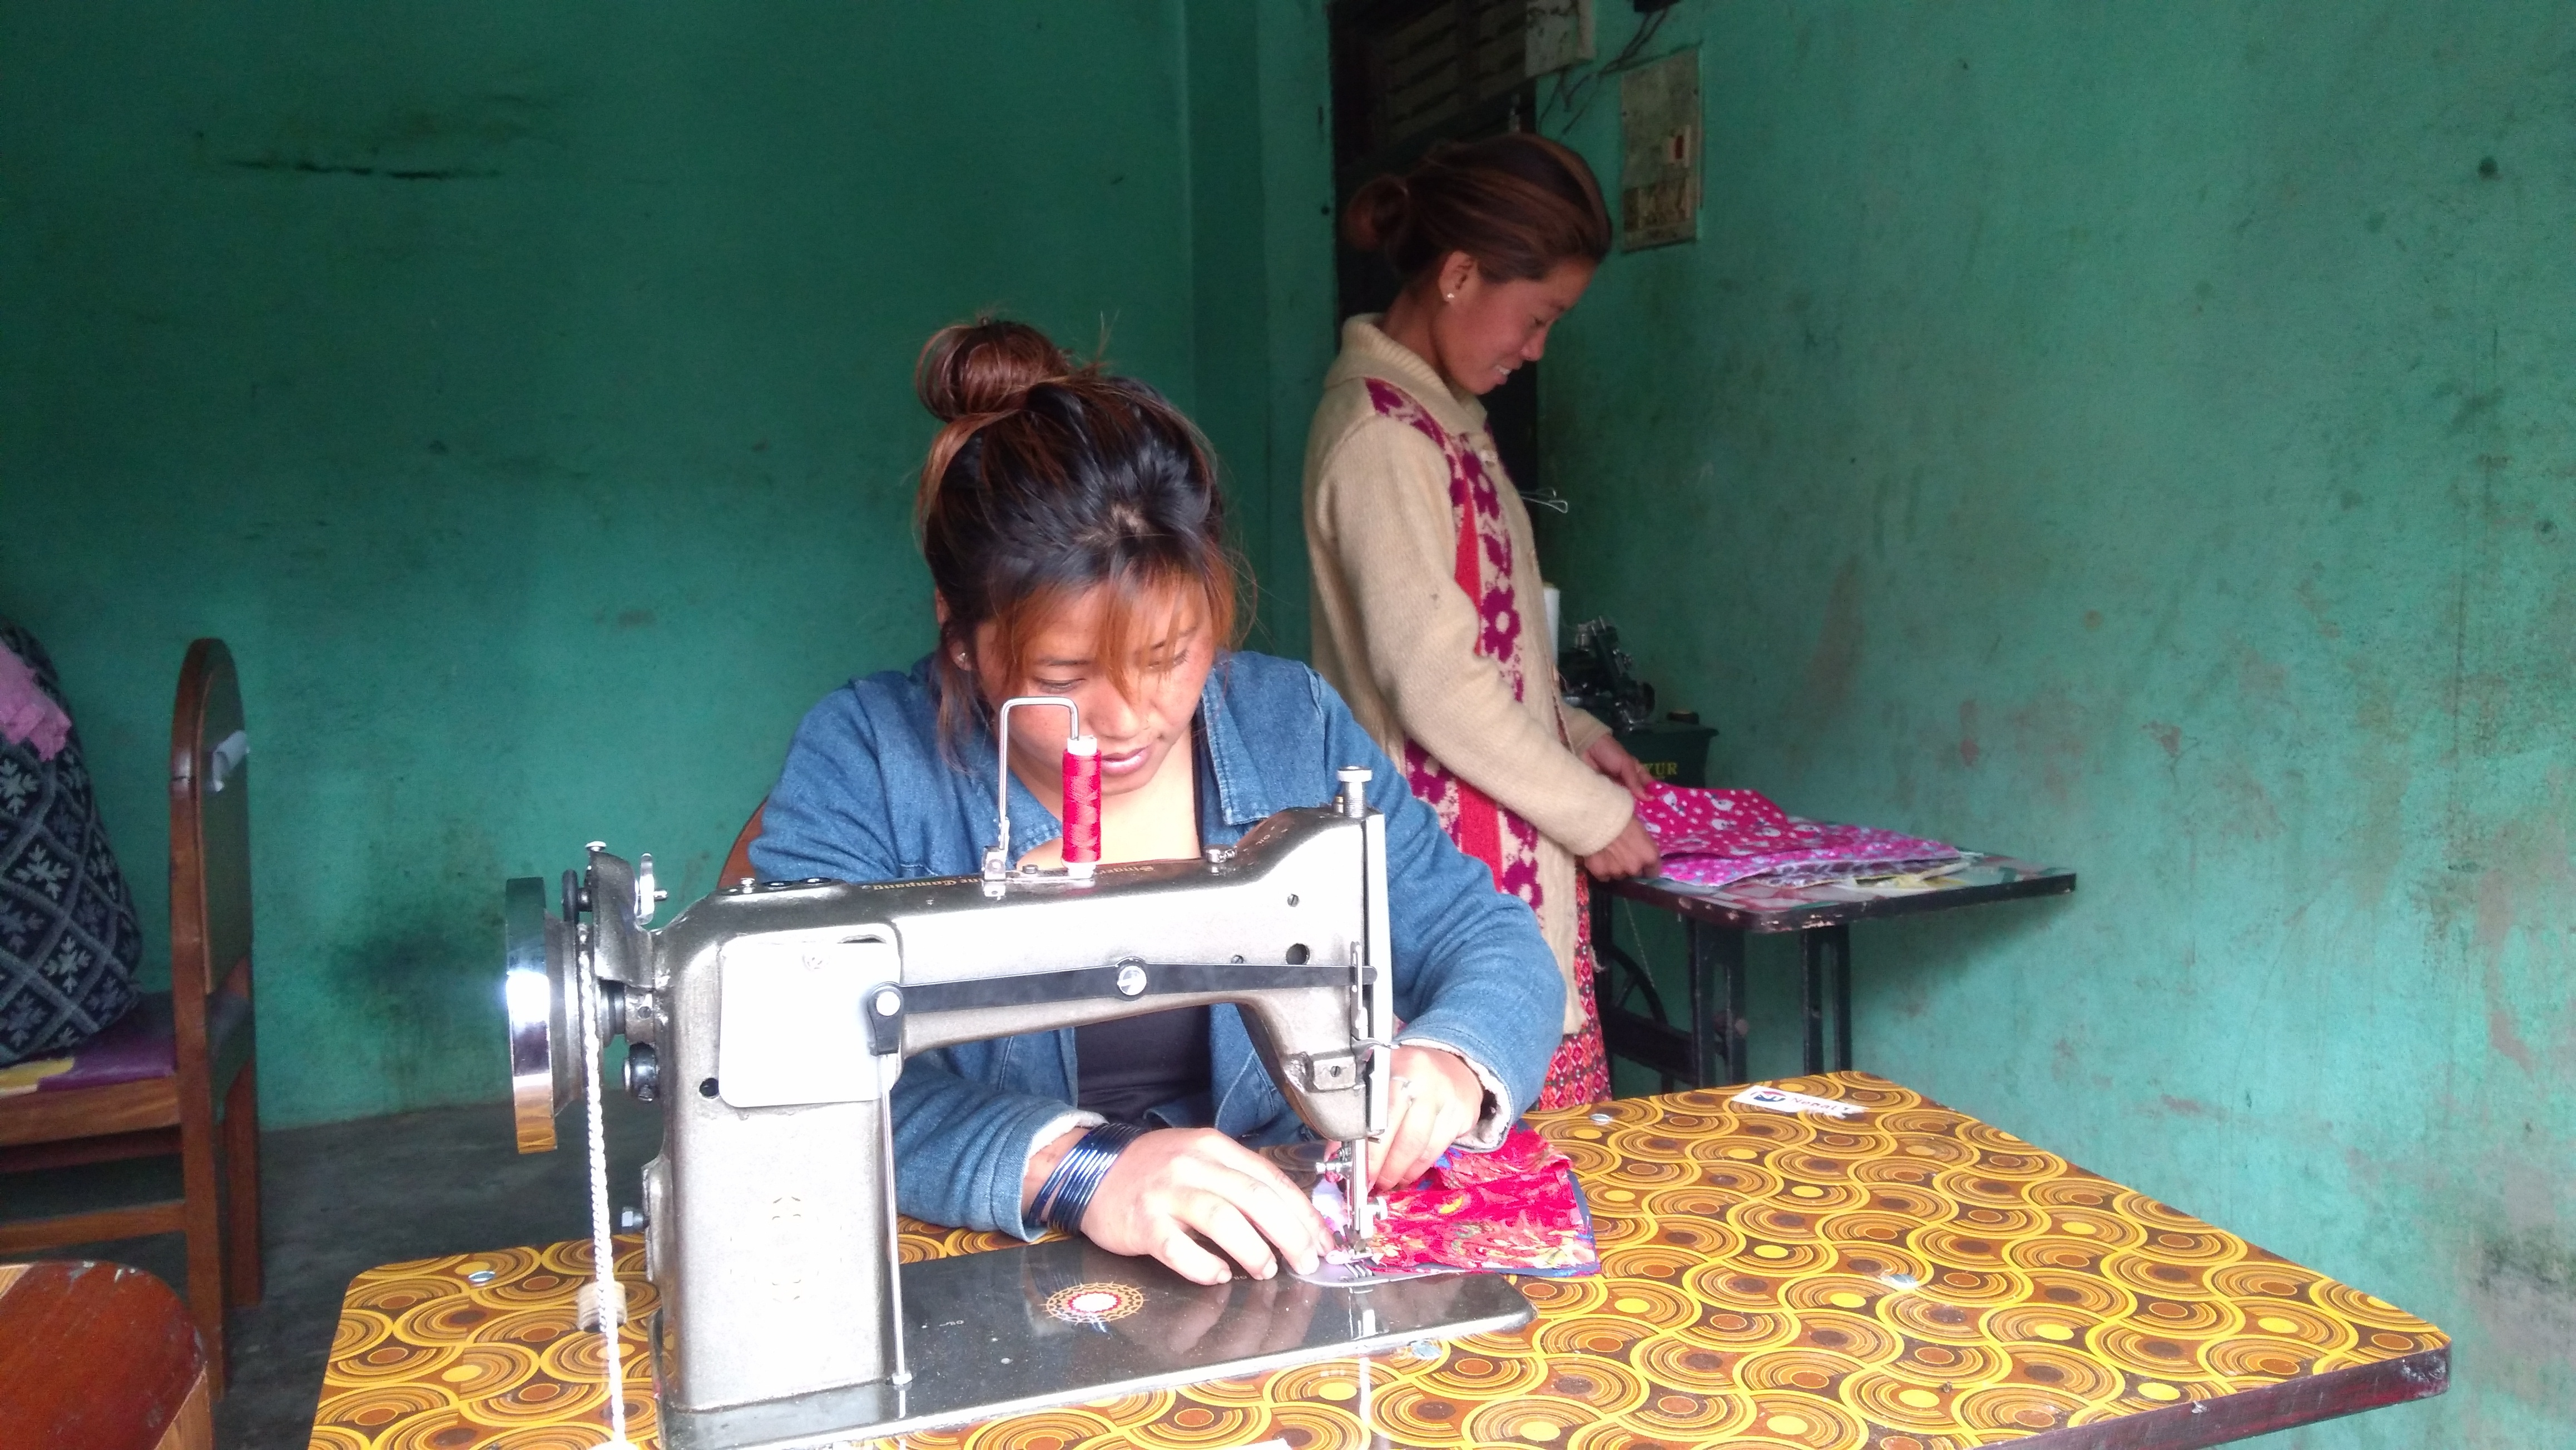 Nepal sewing center 6 19 1